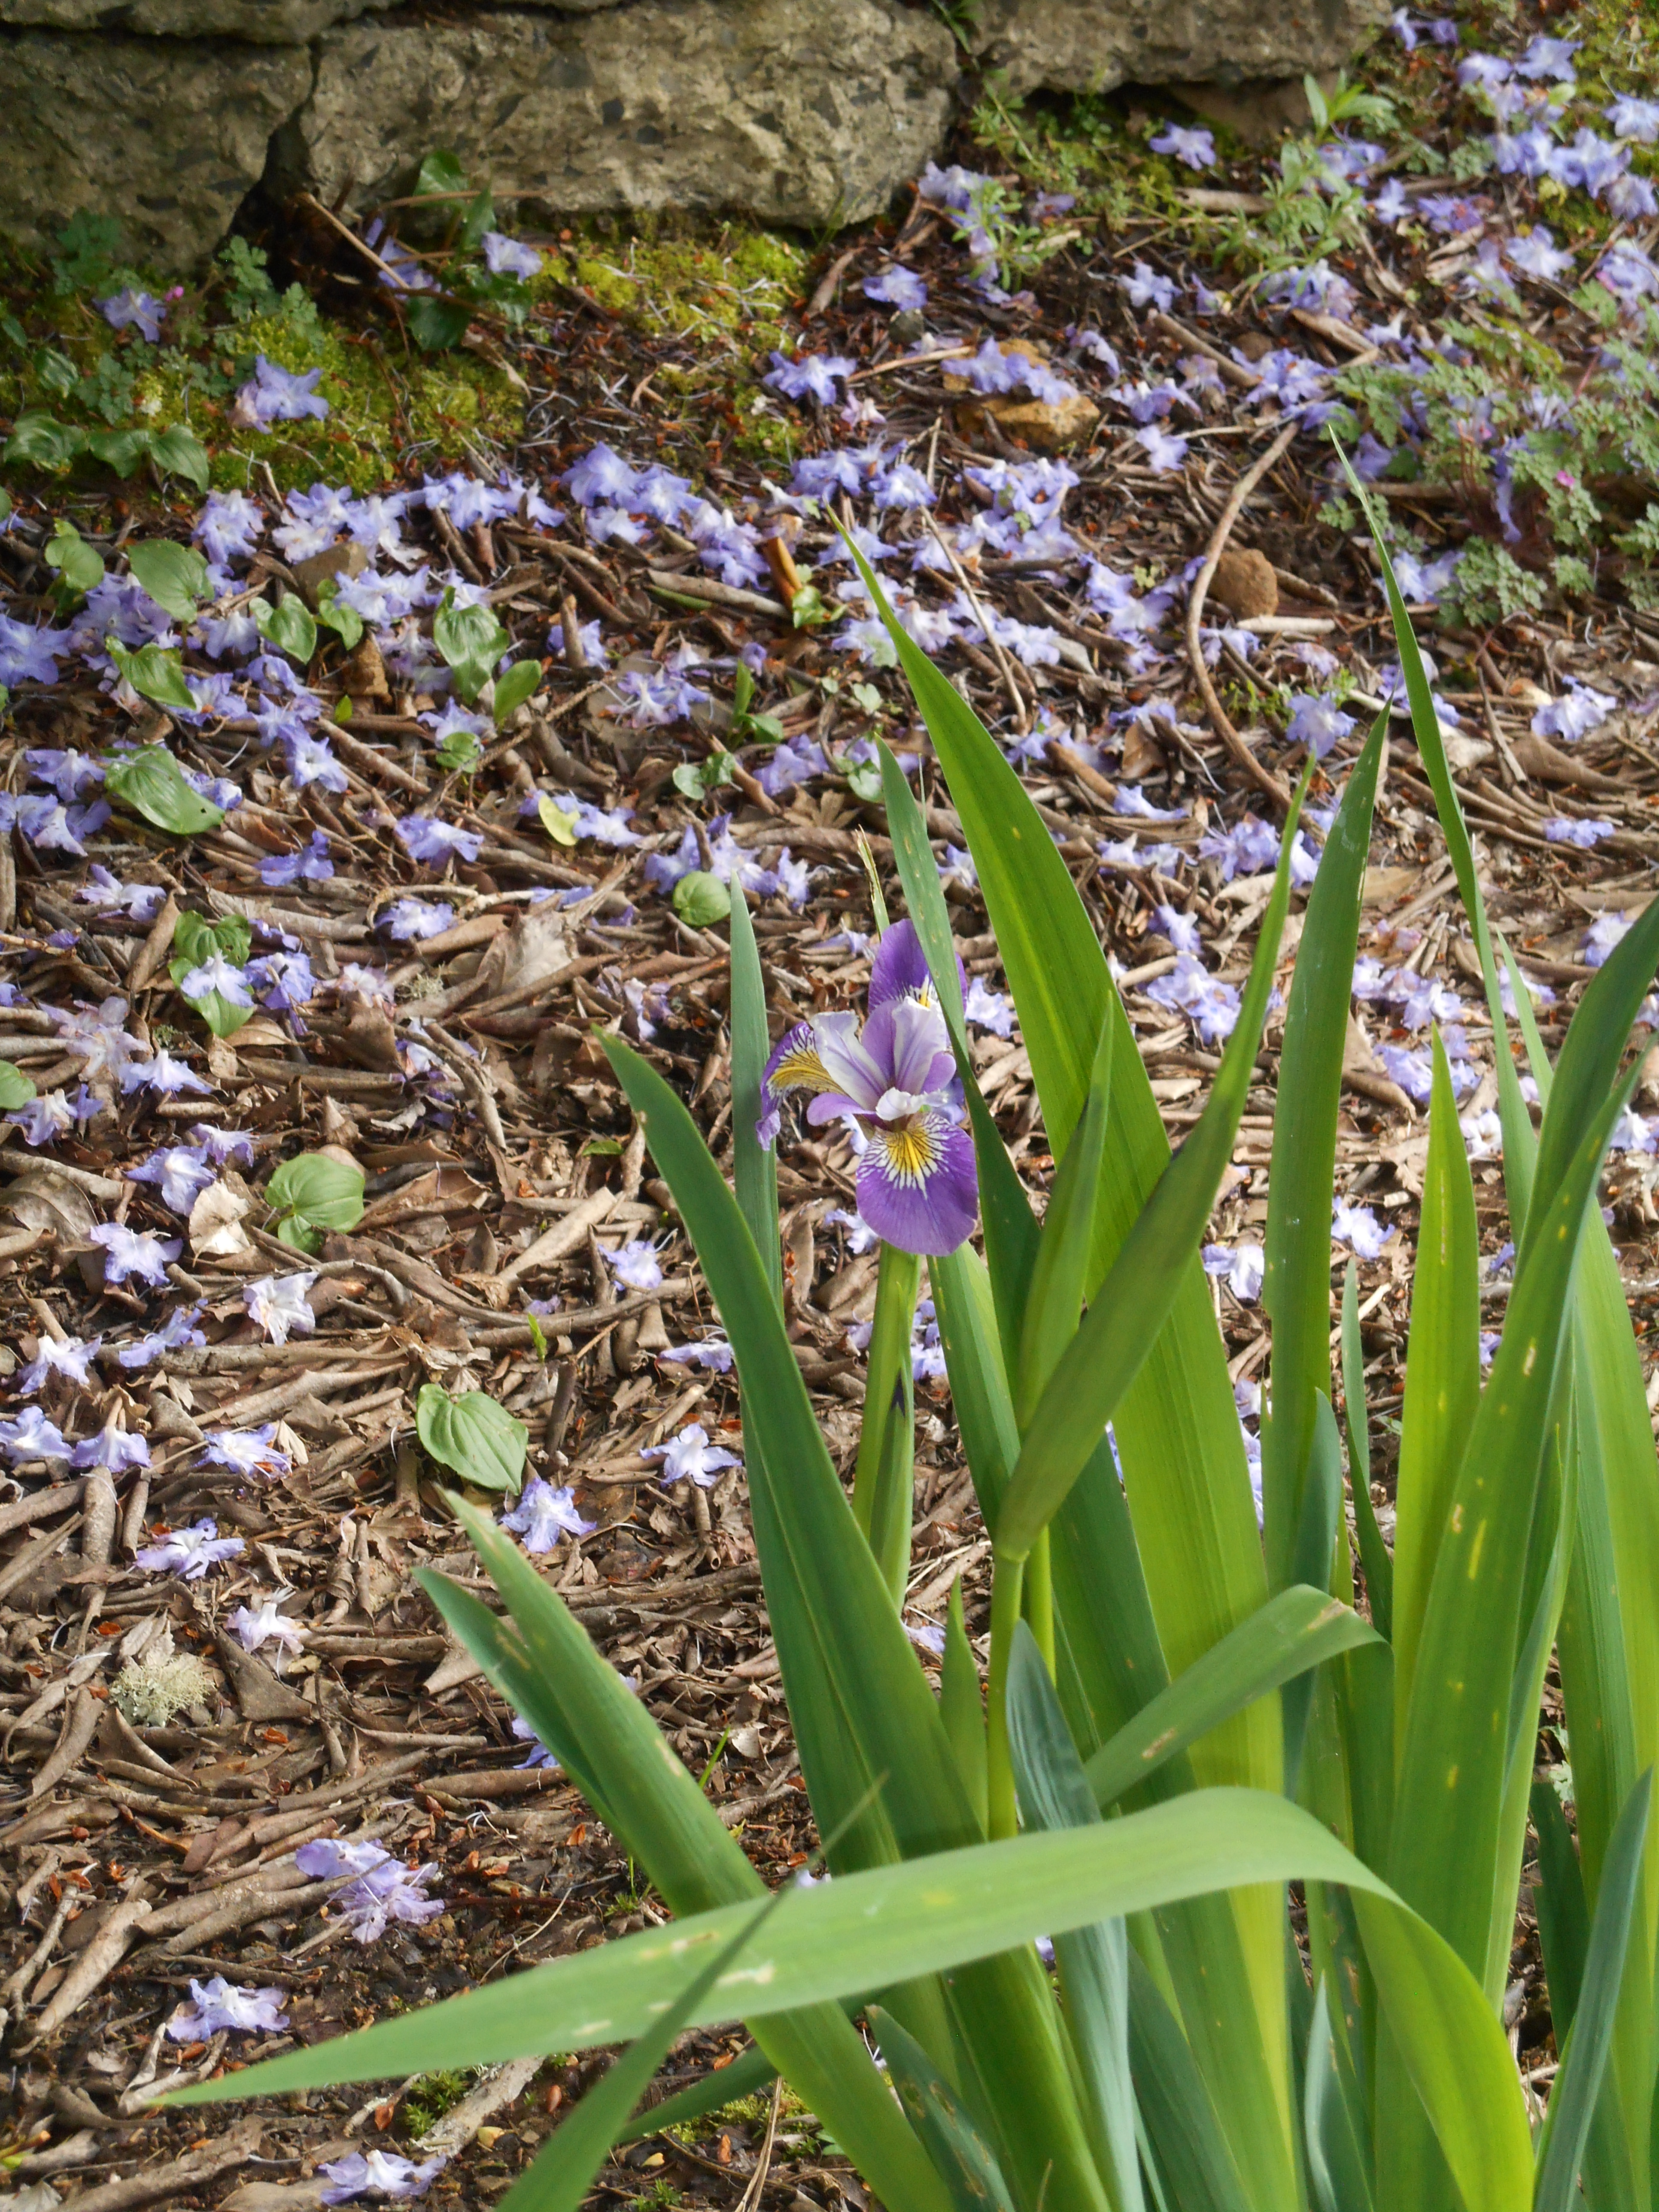 One of the earliest Irises in bloom at the Connie Hansen garden, perfectly matched to the Azalea behind it.